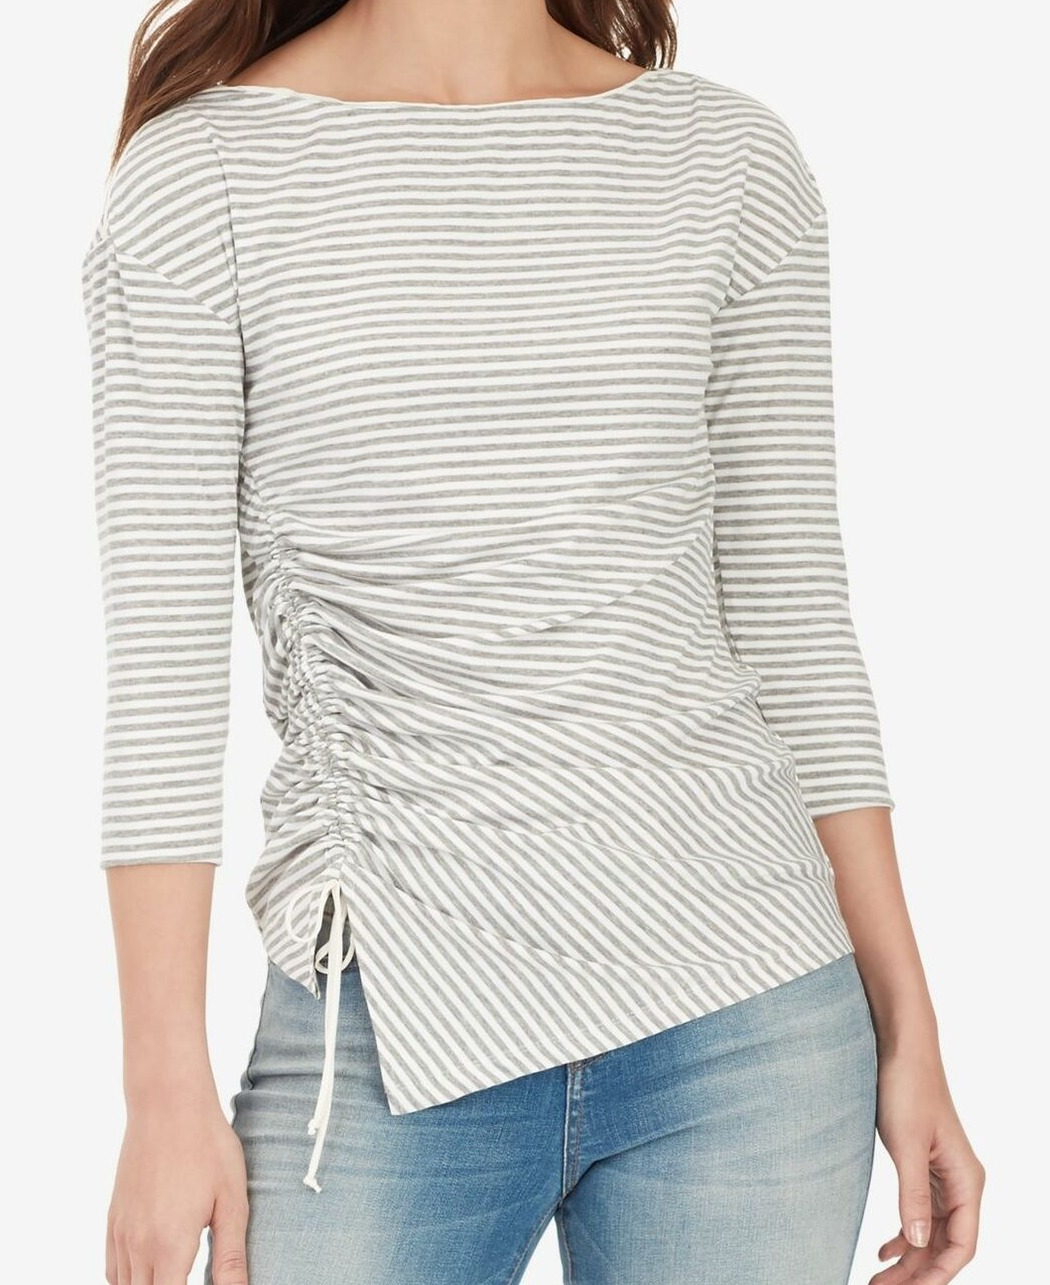 William-Rast-Women-039-s-Top-Blouse-Gray-Size-Medium-M-Striped-Ruched